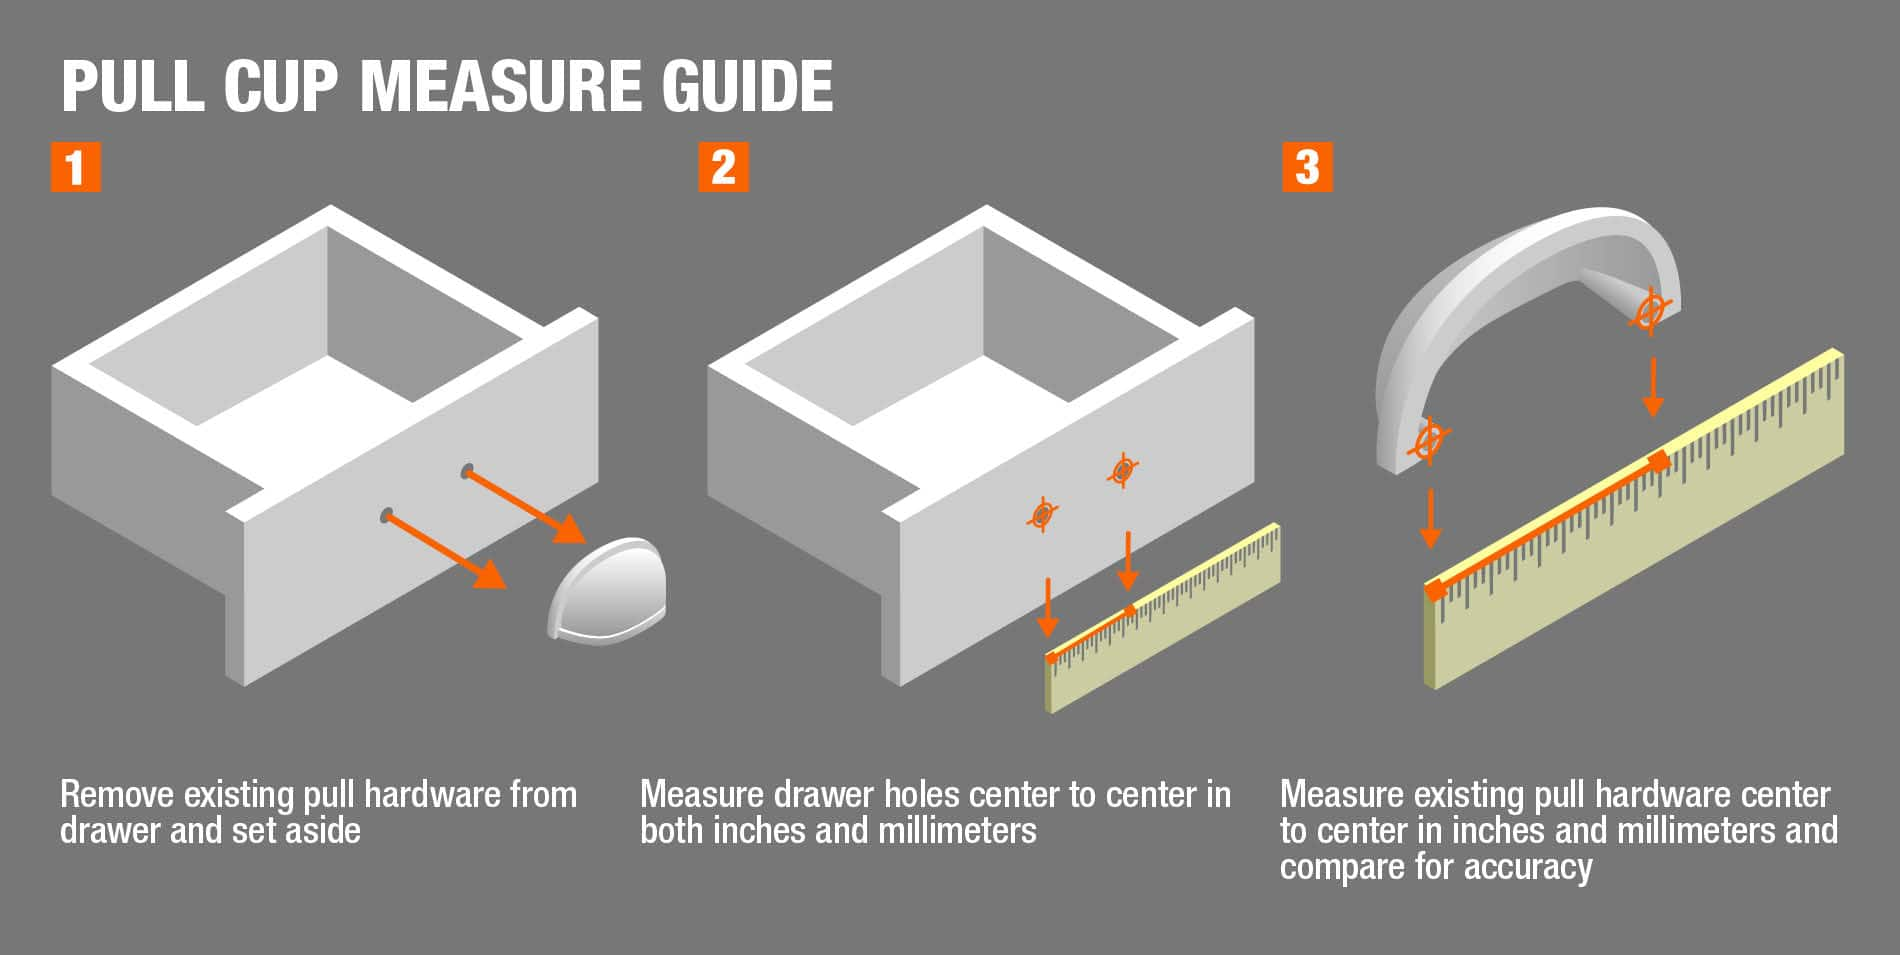 Pull Cup Measure Guide